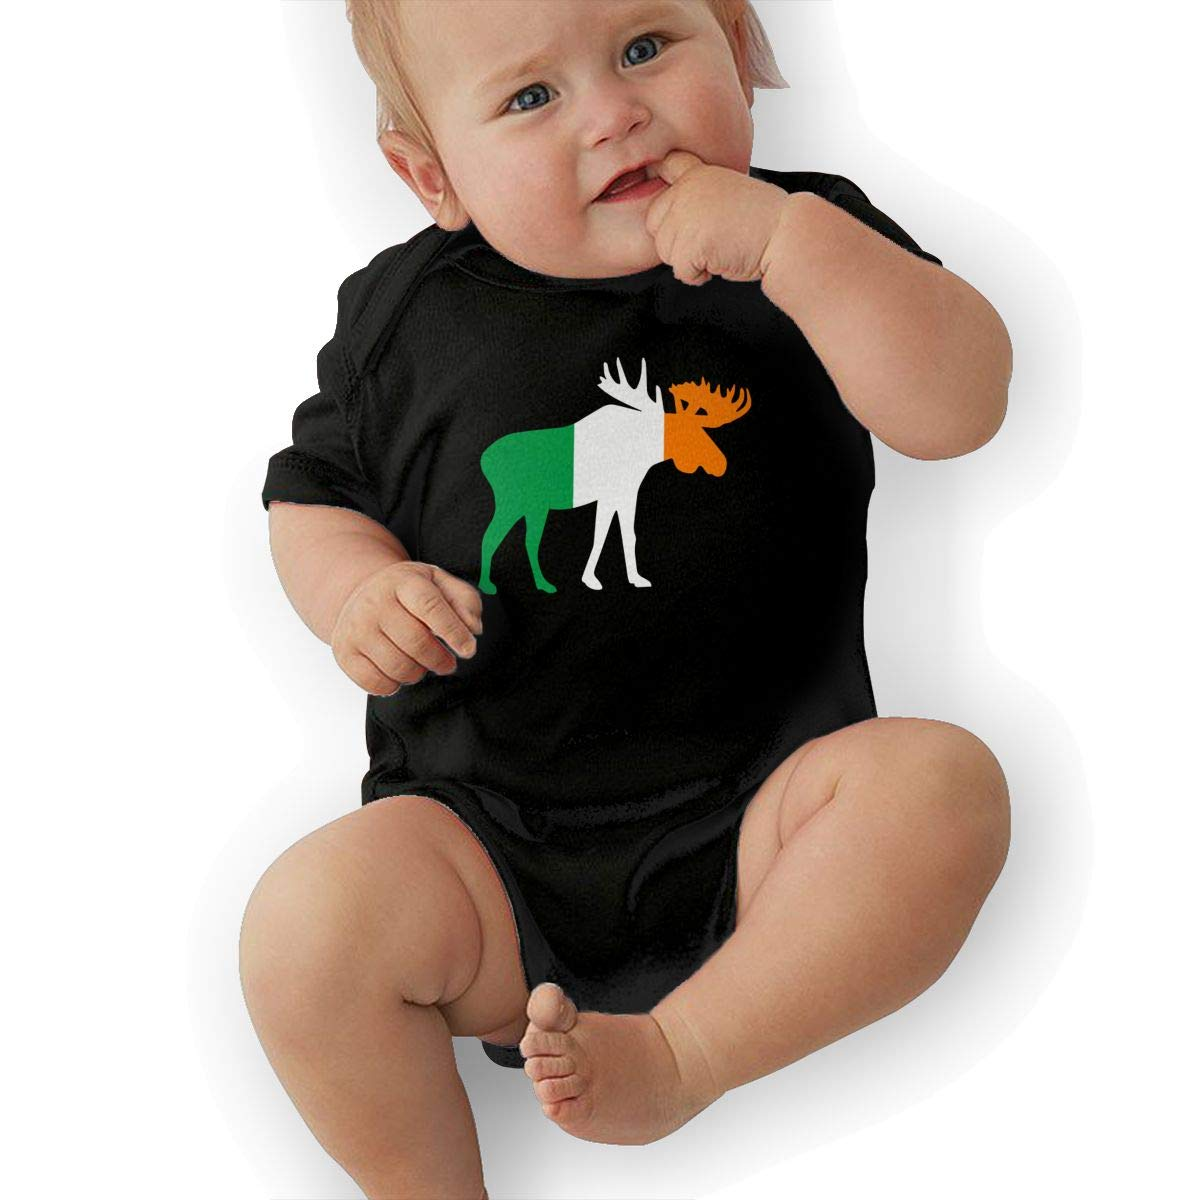 U88oi-8 Short Sleeve Cotton Rompers for Unisex Baby Fashion Ireland Moose Jumpsuit